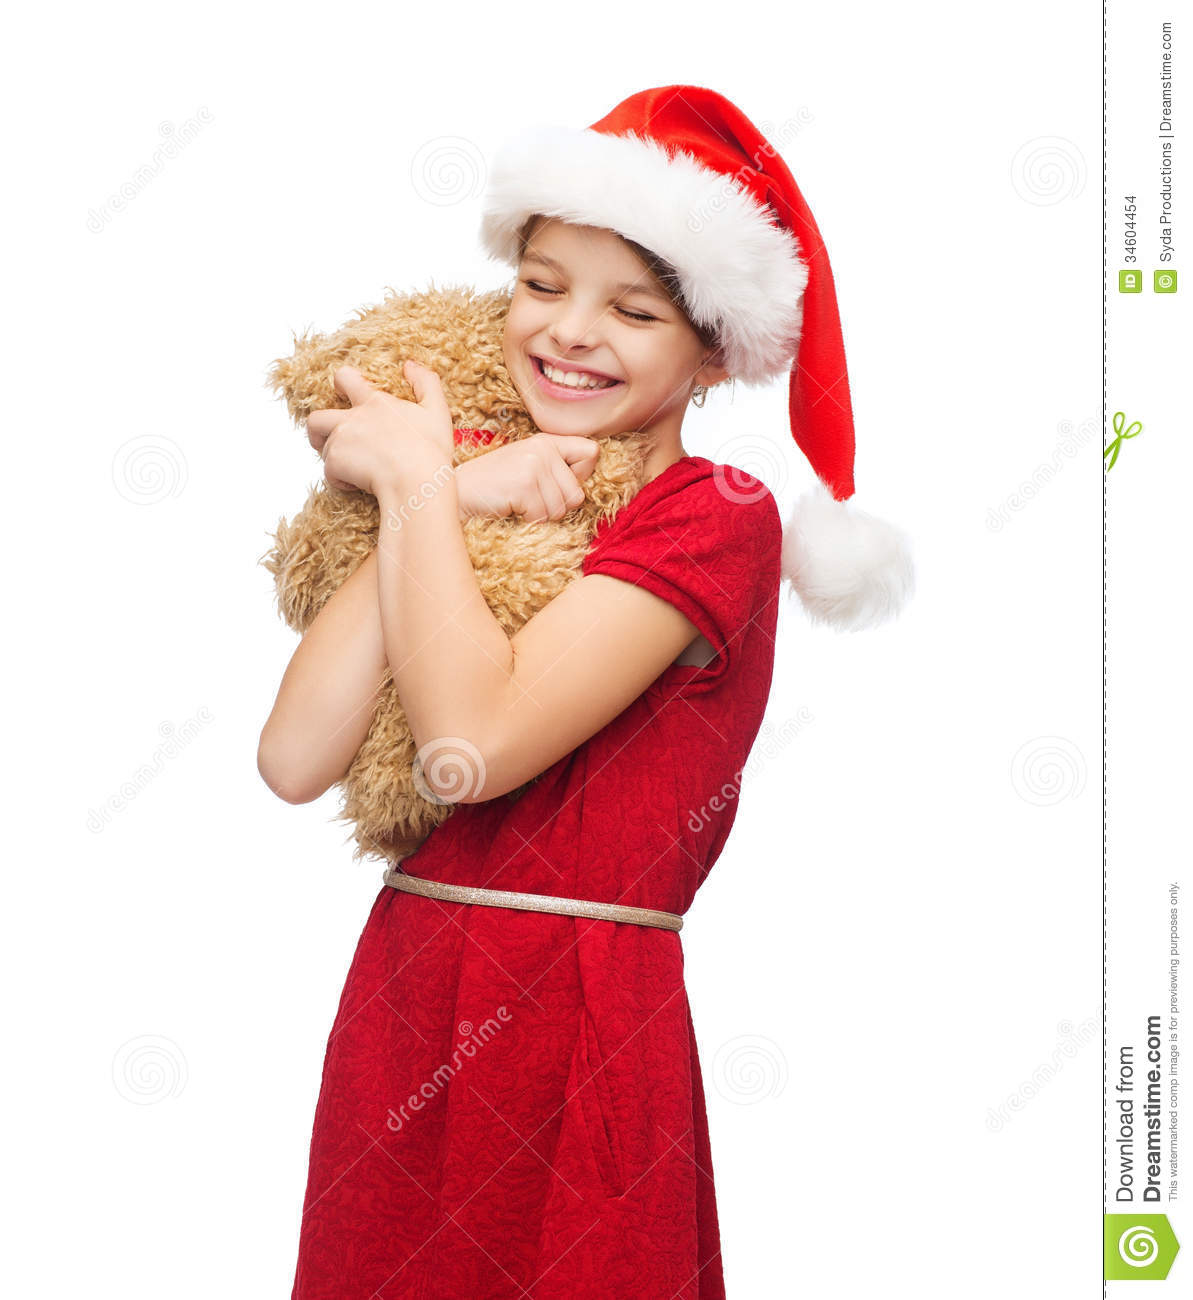 Christmas Teddy Bear Smiling Free Commercial Downloads Of Stock